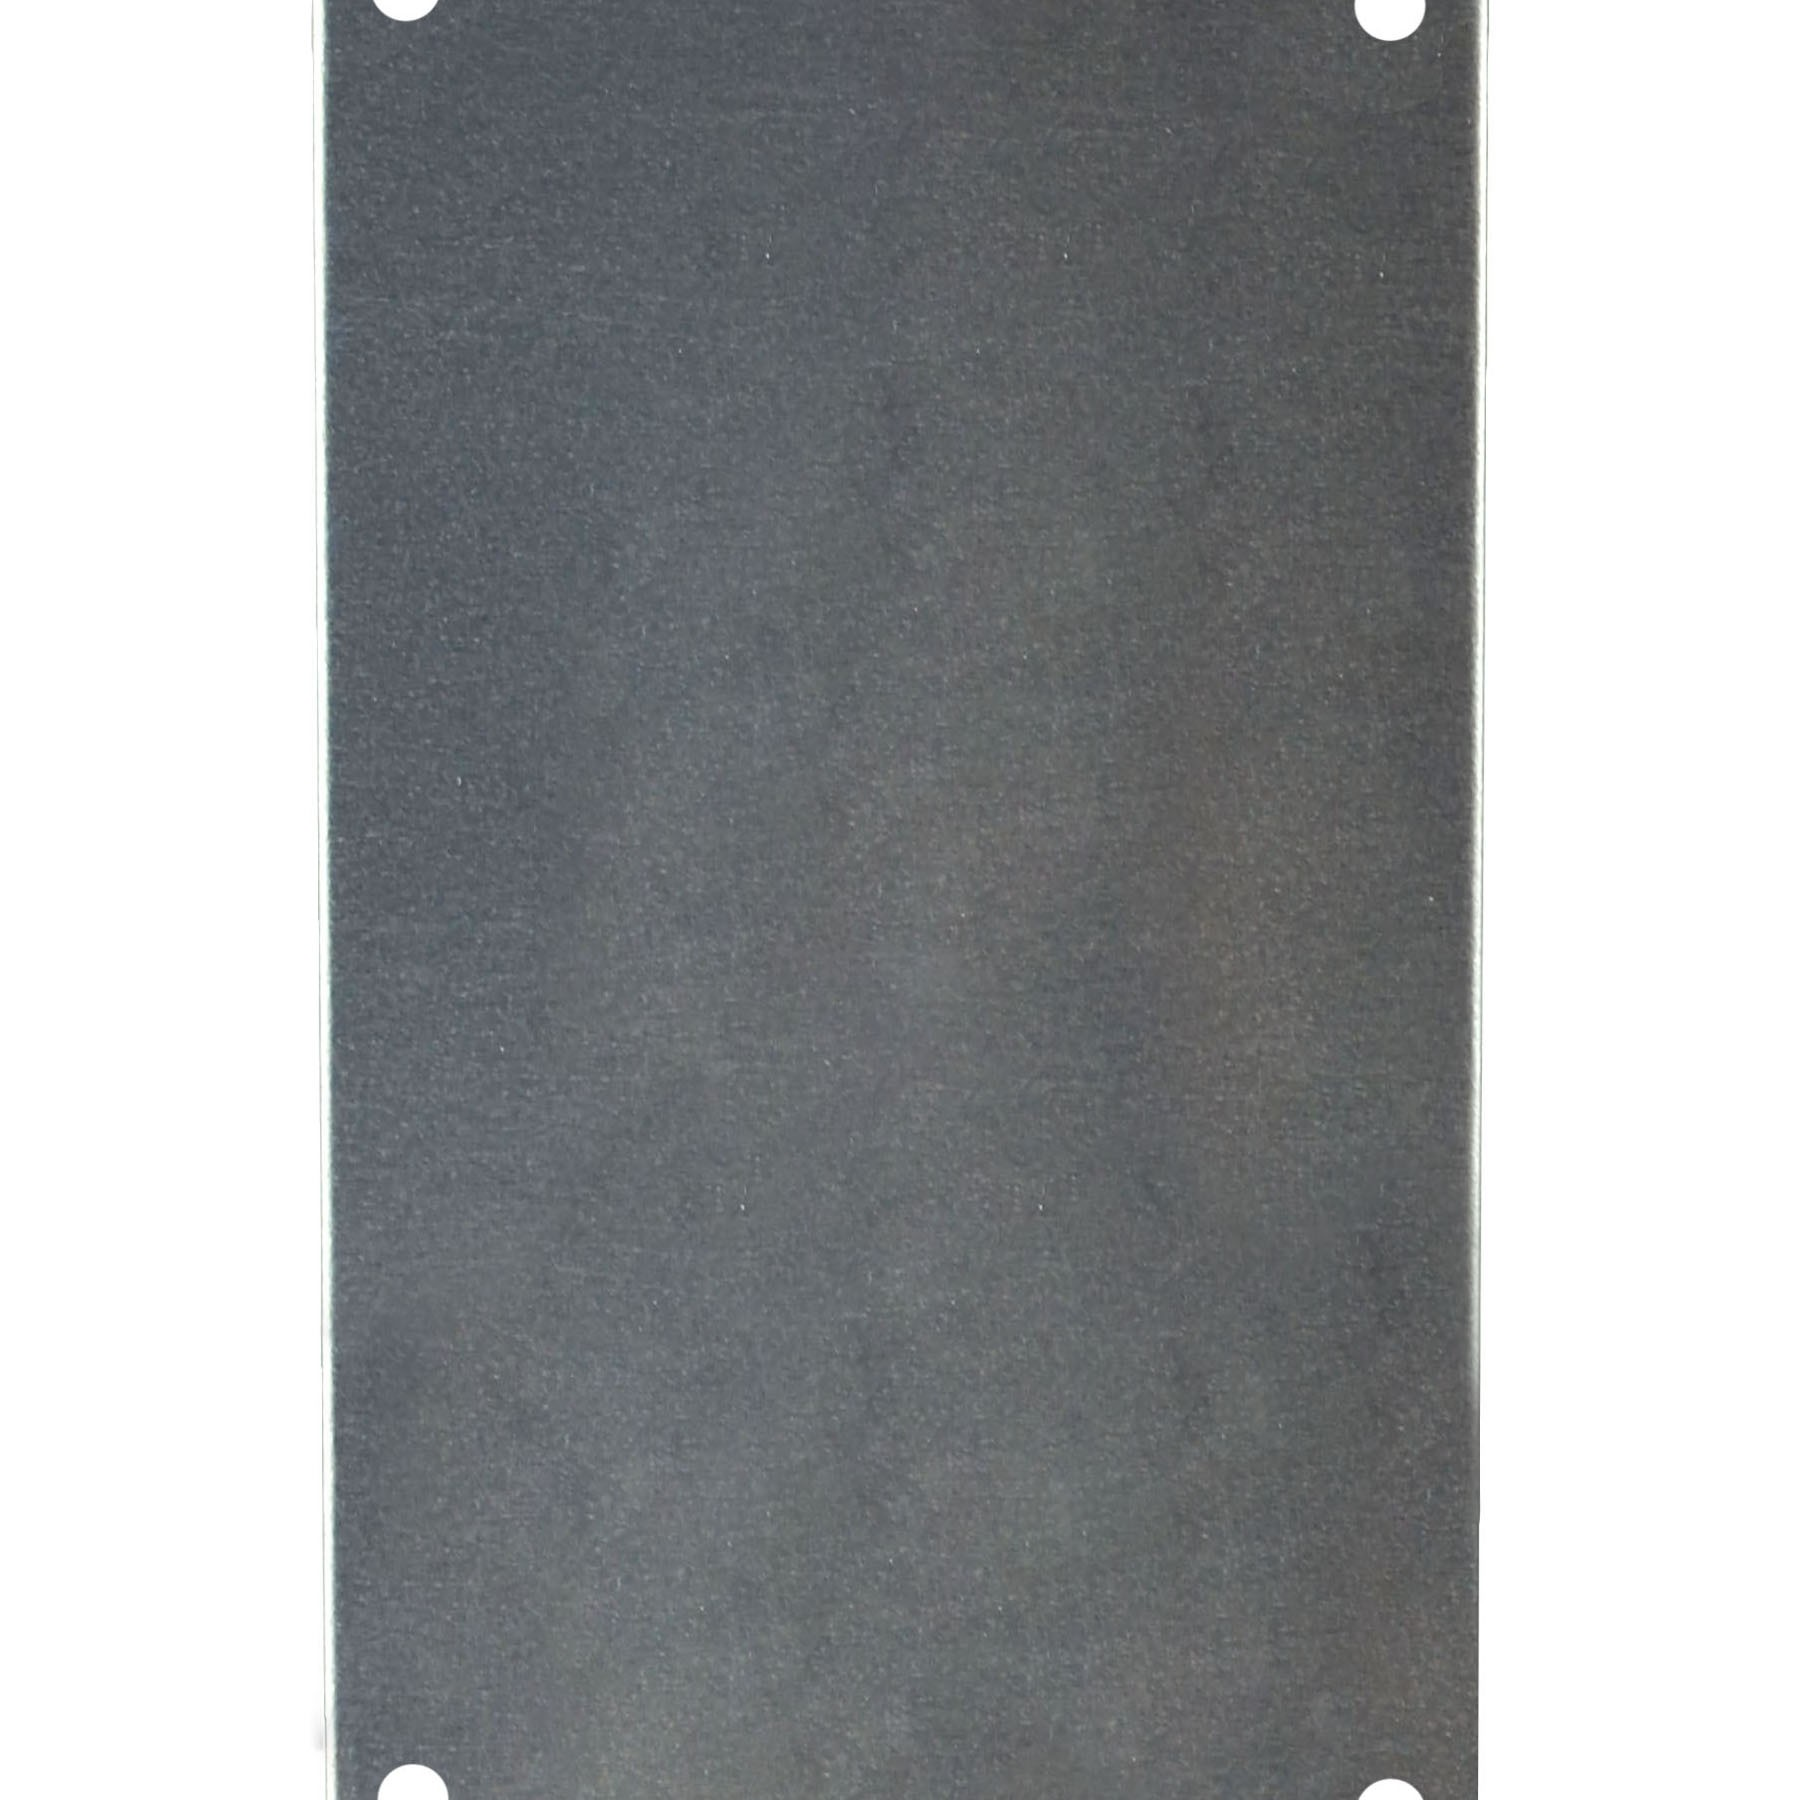 "Aluminum Back Panel for 9"" x 4"" x 3"" Enclosures"